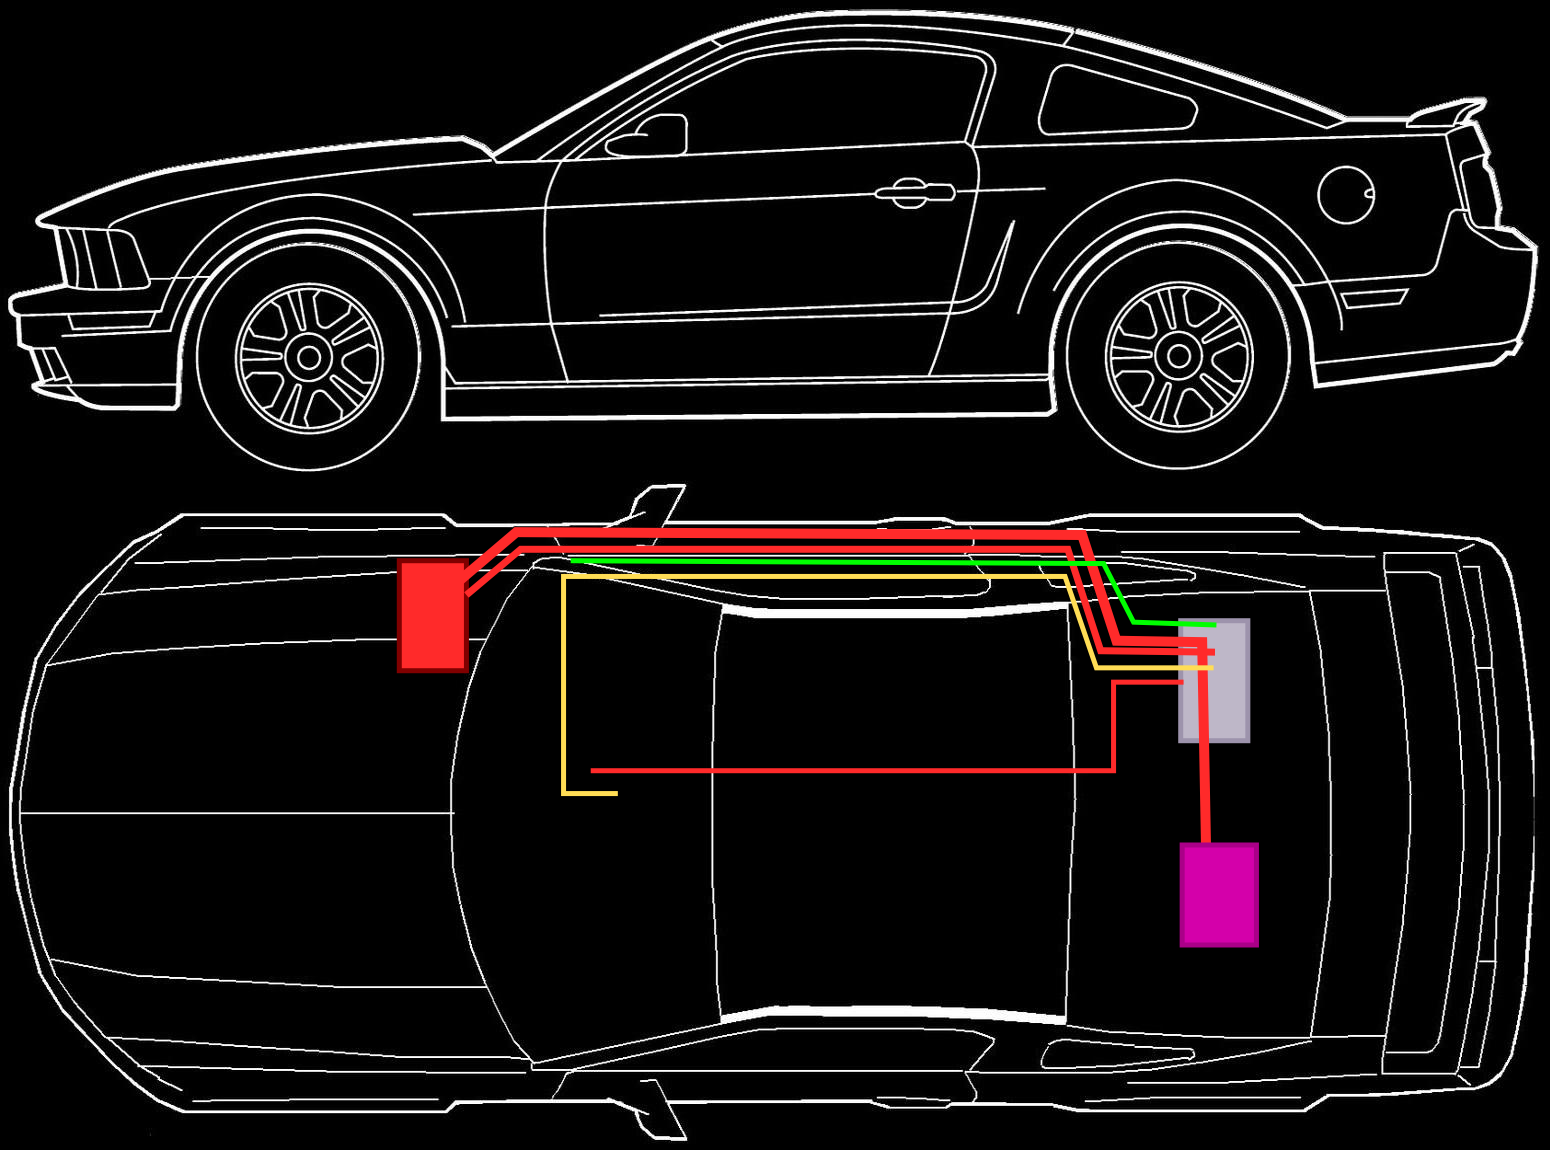 images of basic car wiring wire diagram images inspirations the basic wiring of the components in the ivi test car the red the basic wiring of the components in the ivi test car the red